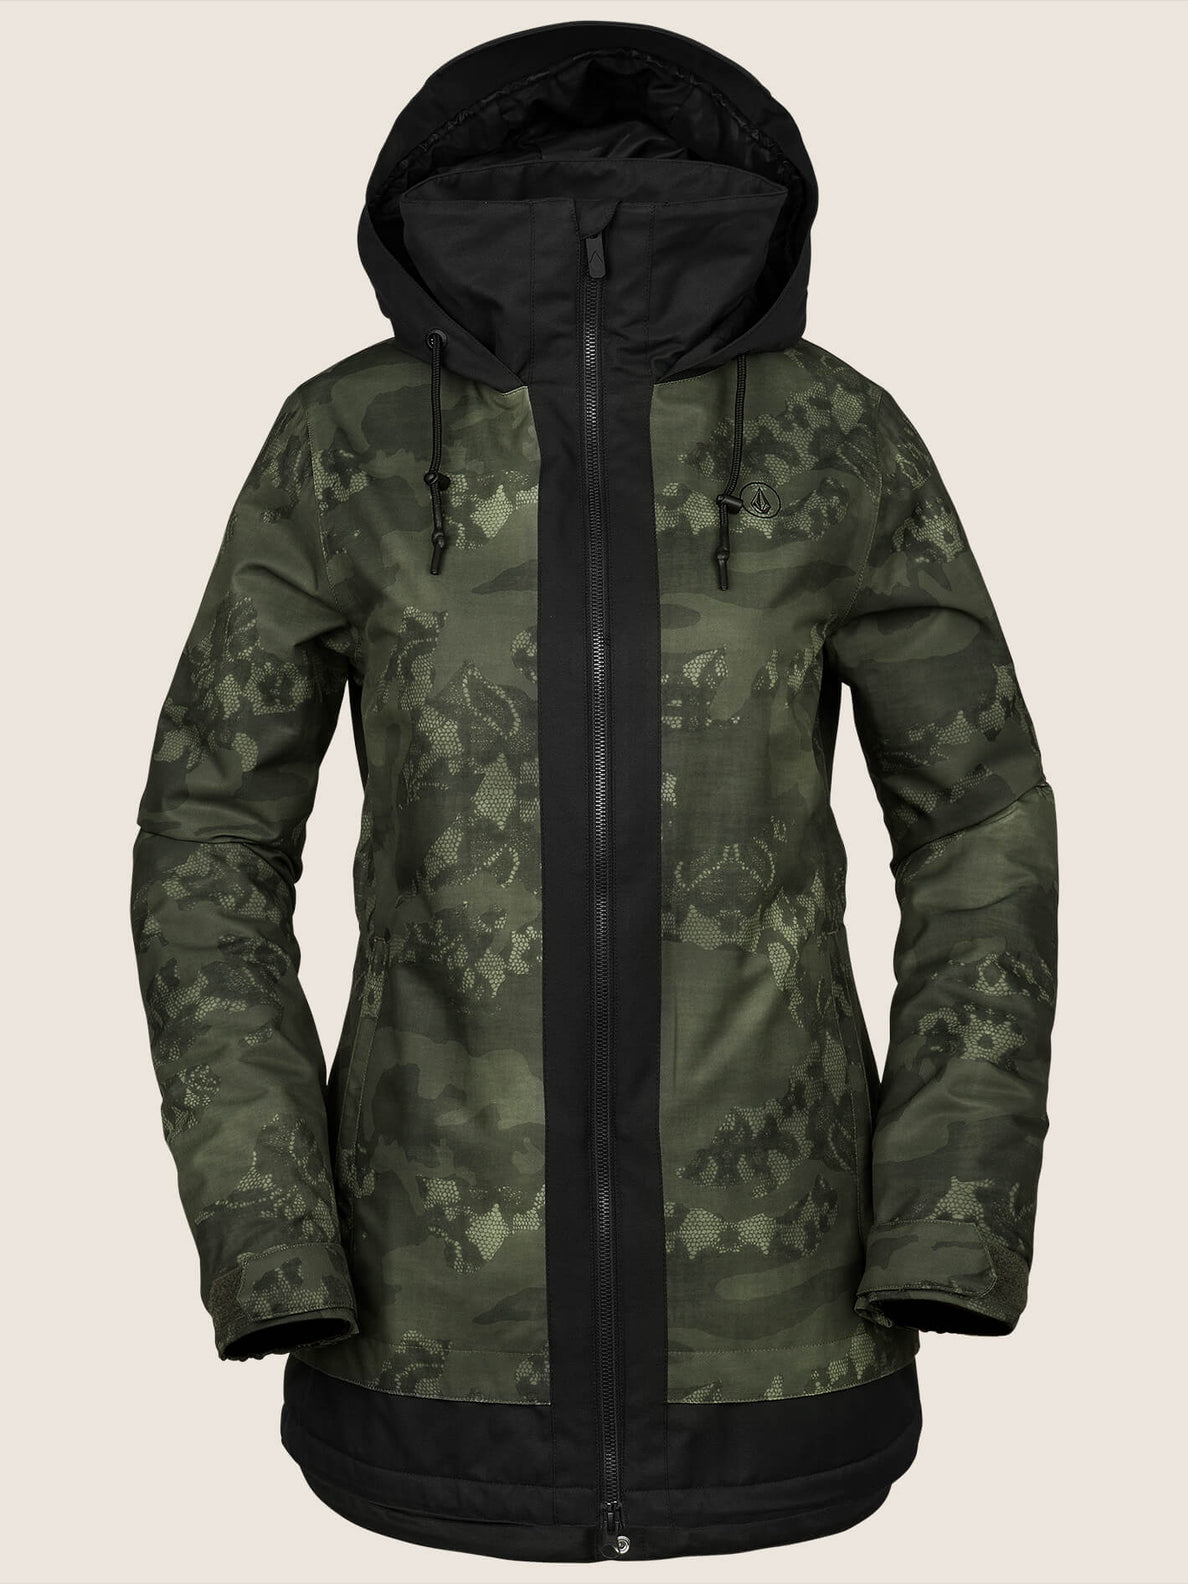 Westland Insulated Jacket In Camouflage, Front View